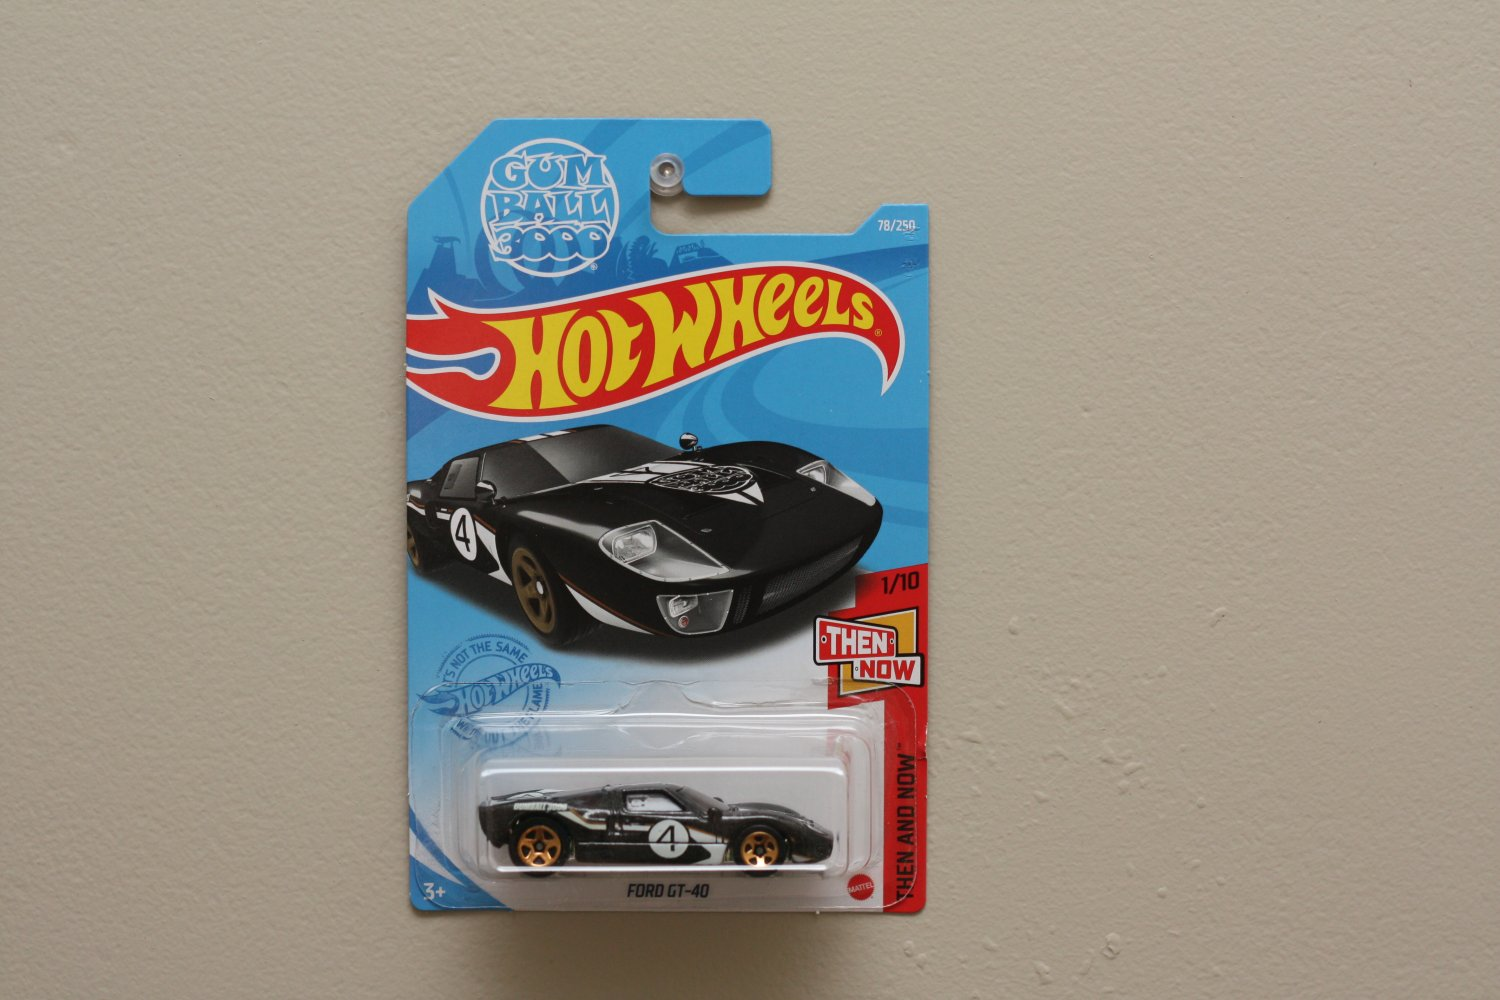 Hot Wheels 2021 Then And Now Ford GT-40 (black) (Gum Ball 3000)